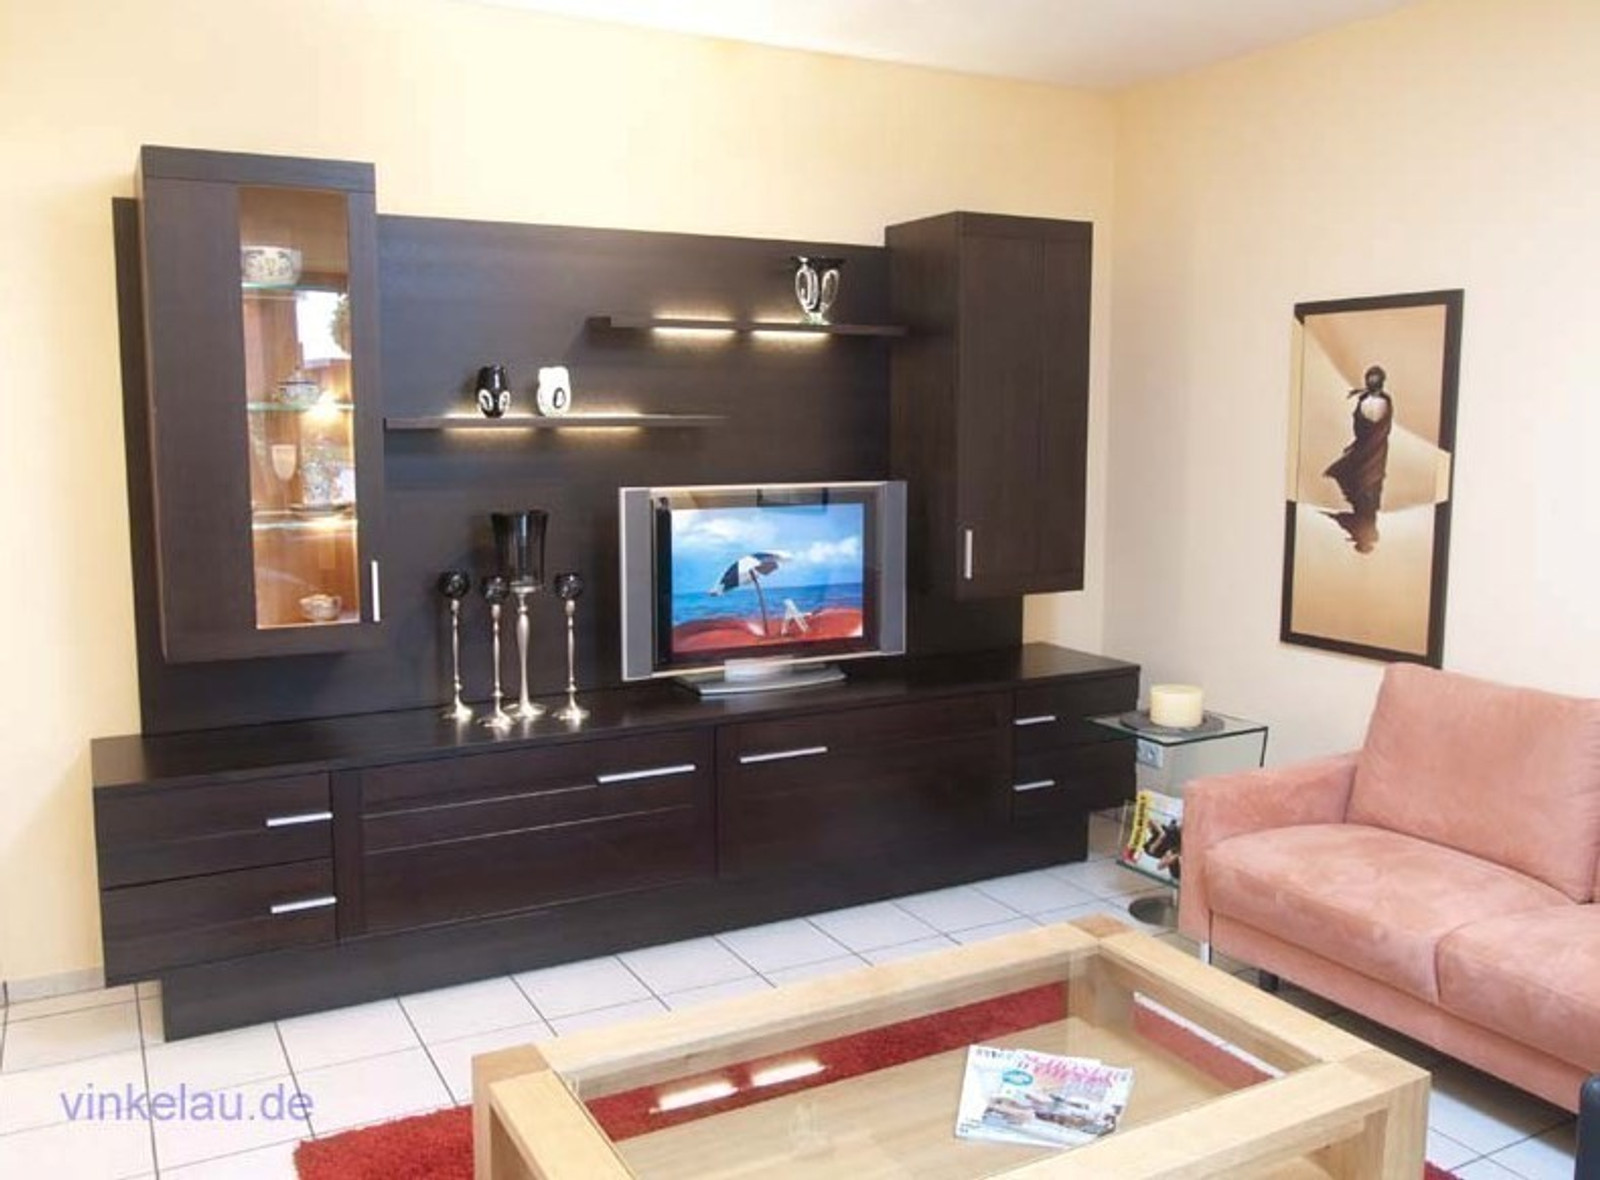 moderne wohnwand ostland eiche massiv mit h ngevitrinen schiebet ren und steckb den moderne. Black Bedroom Furniture Sets. Home Design Ideas